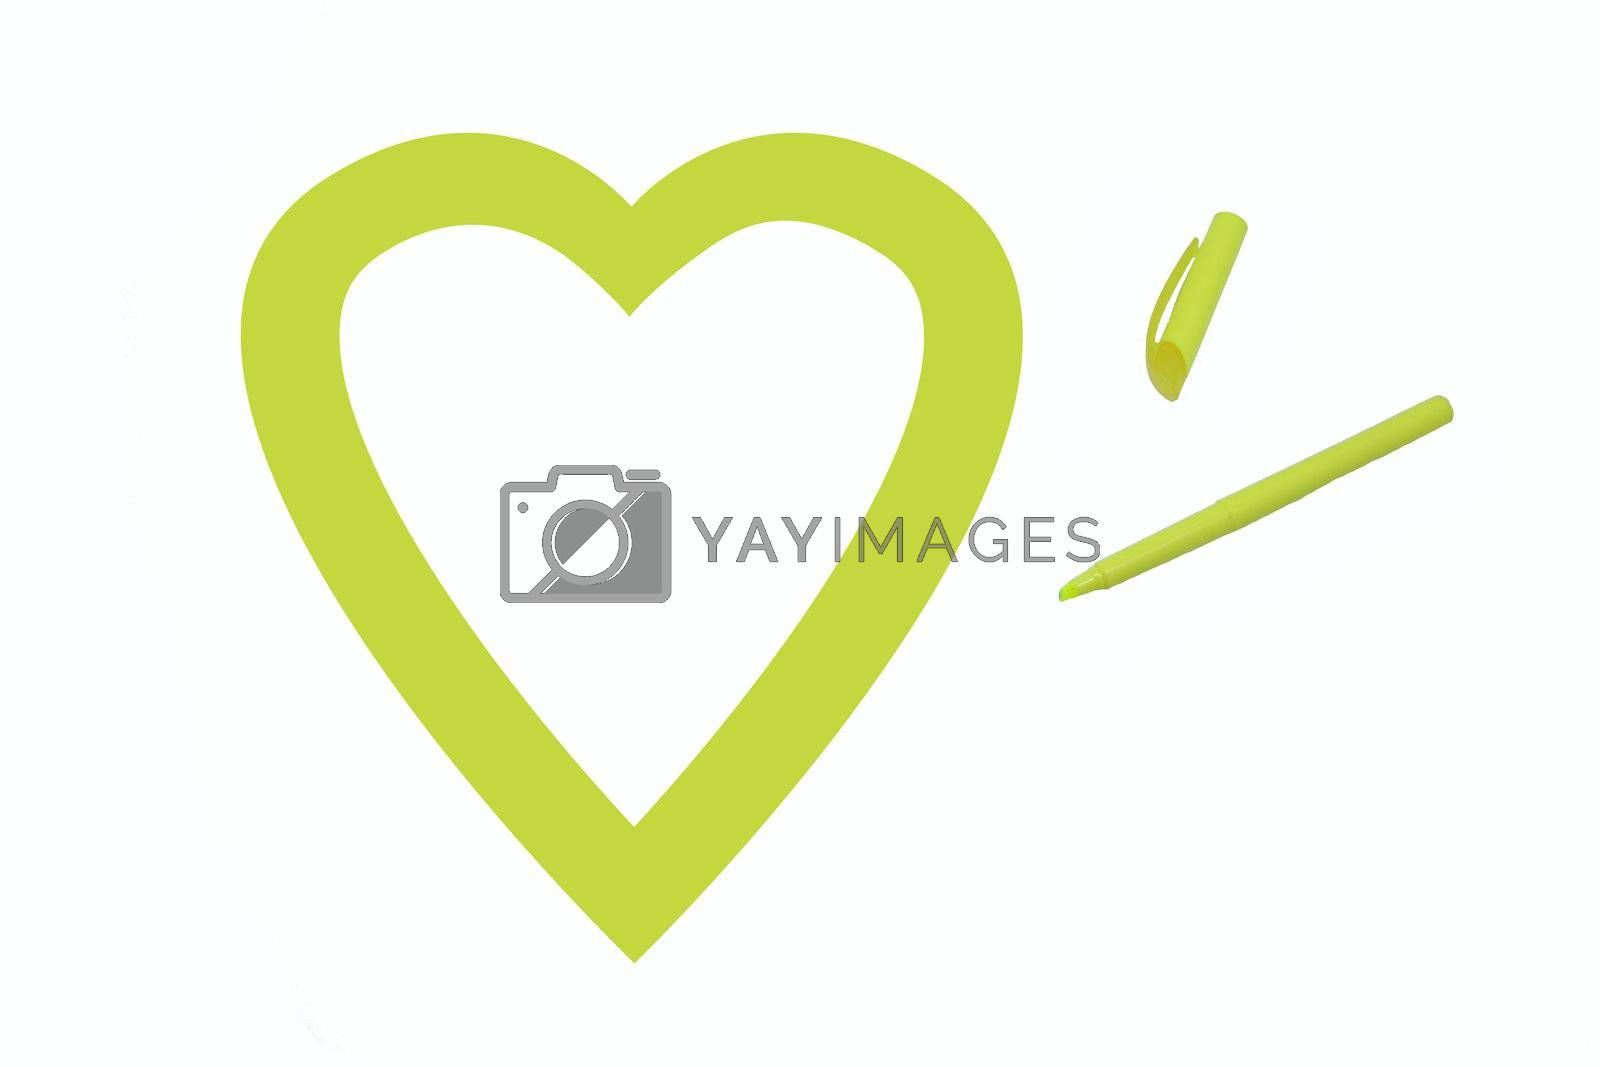 Heart shape colored yellow by office highlighter on white background